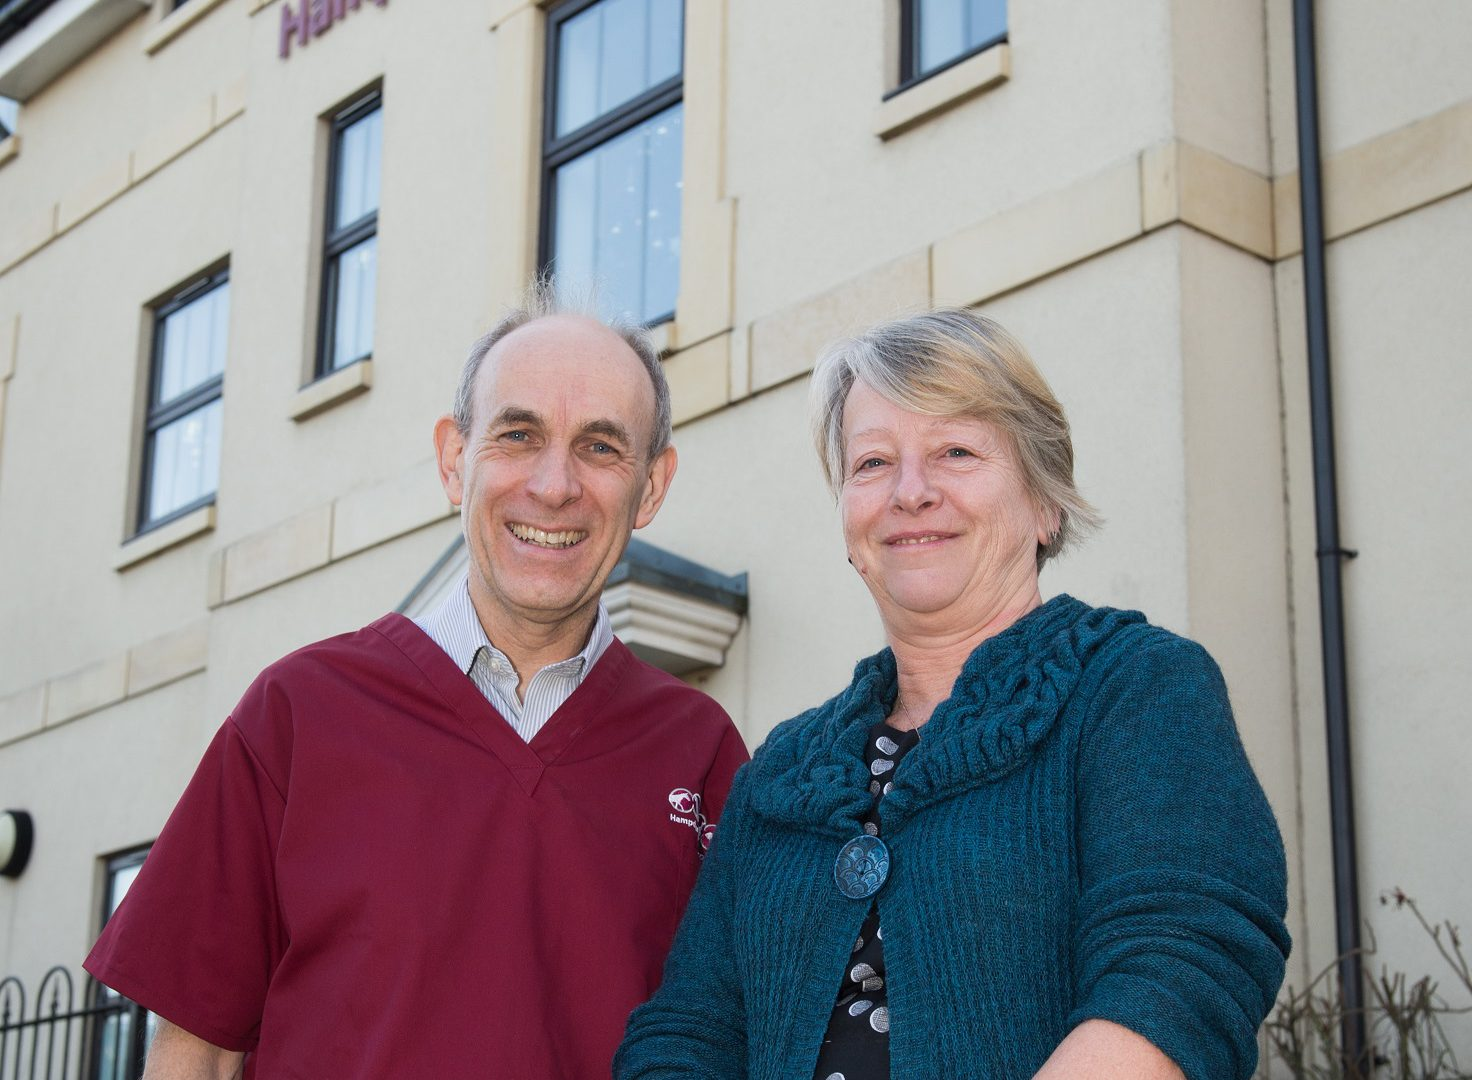 Aylesbury vet practice launches improved out-of-hours emergency service